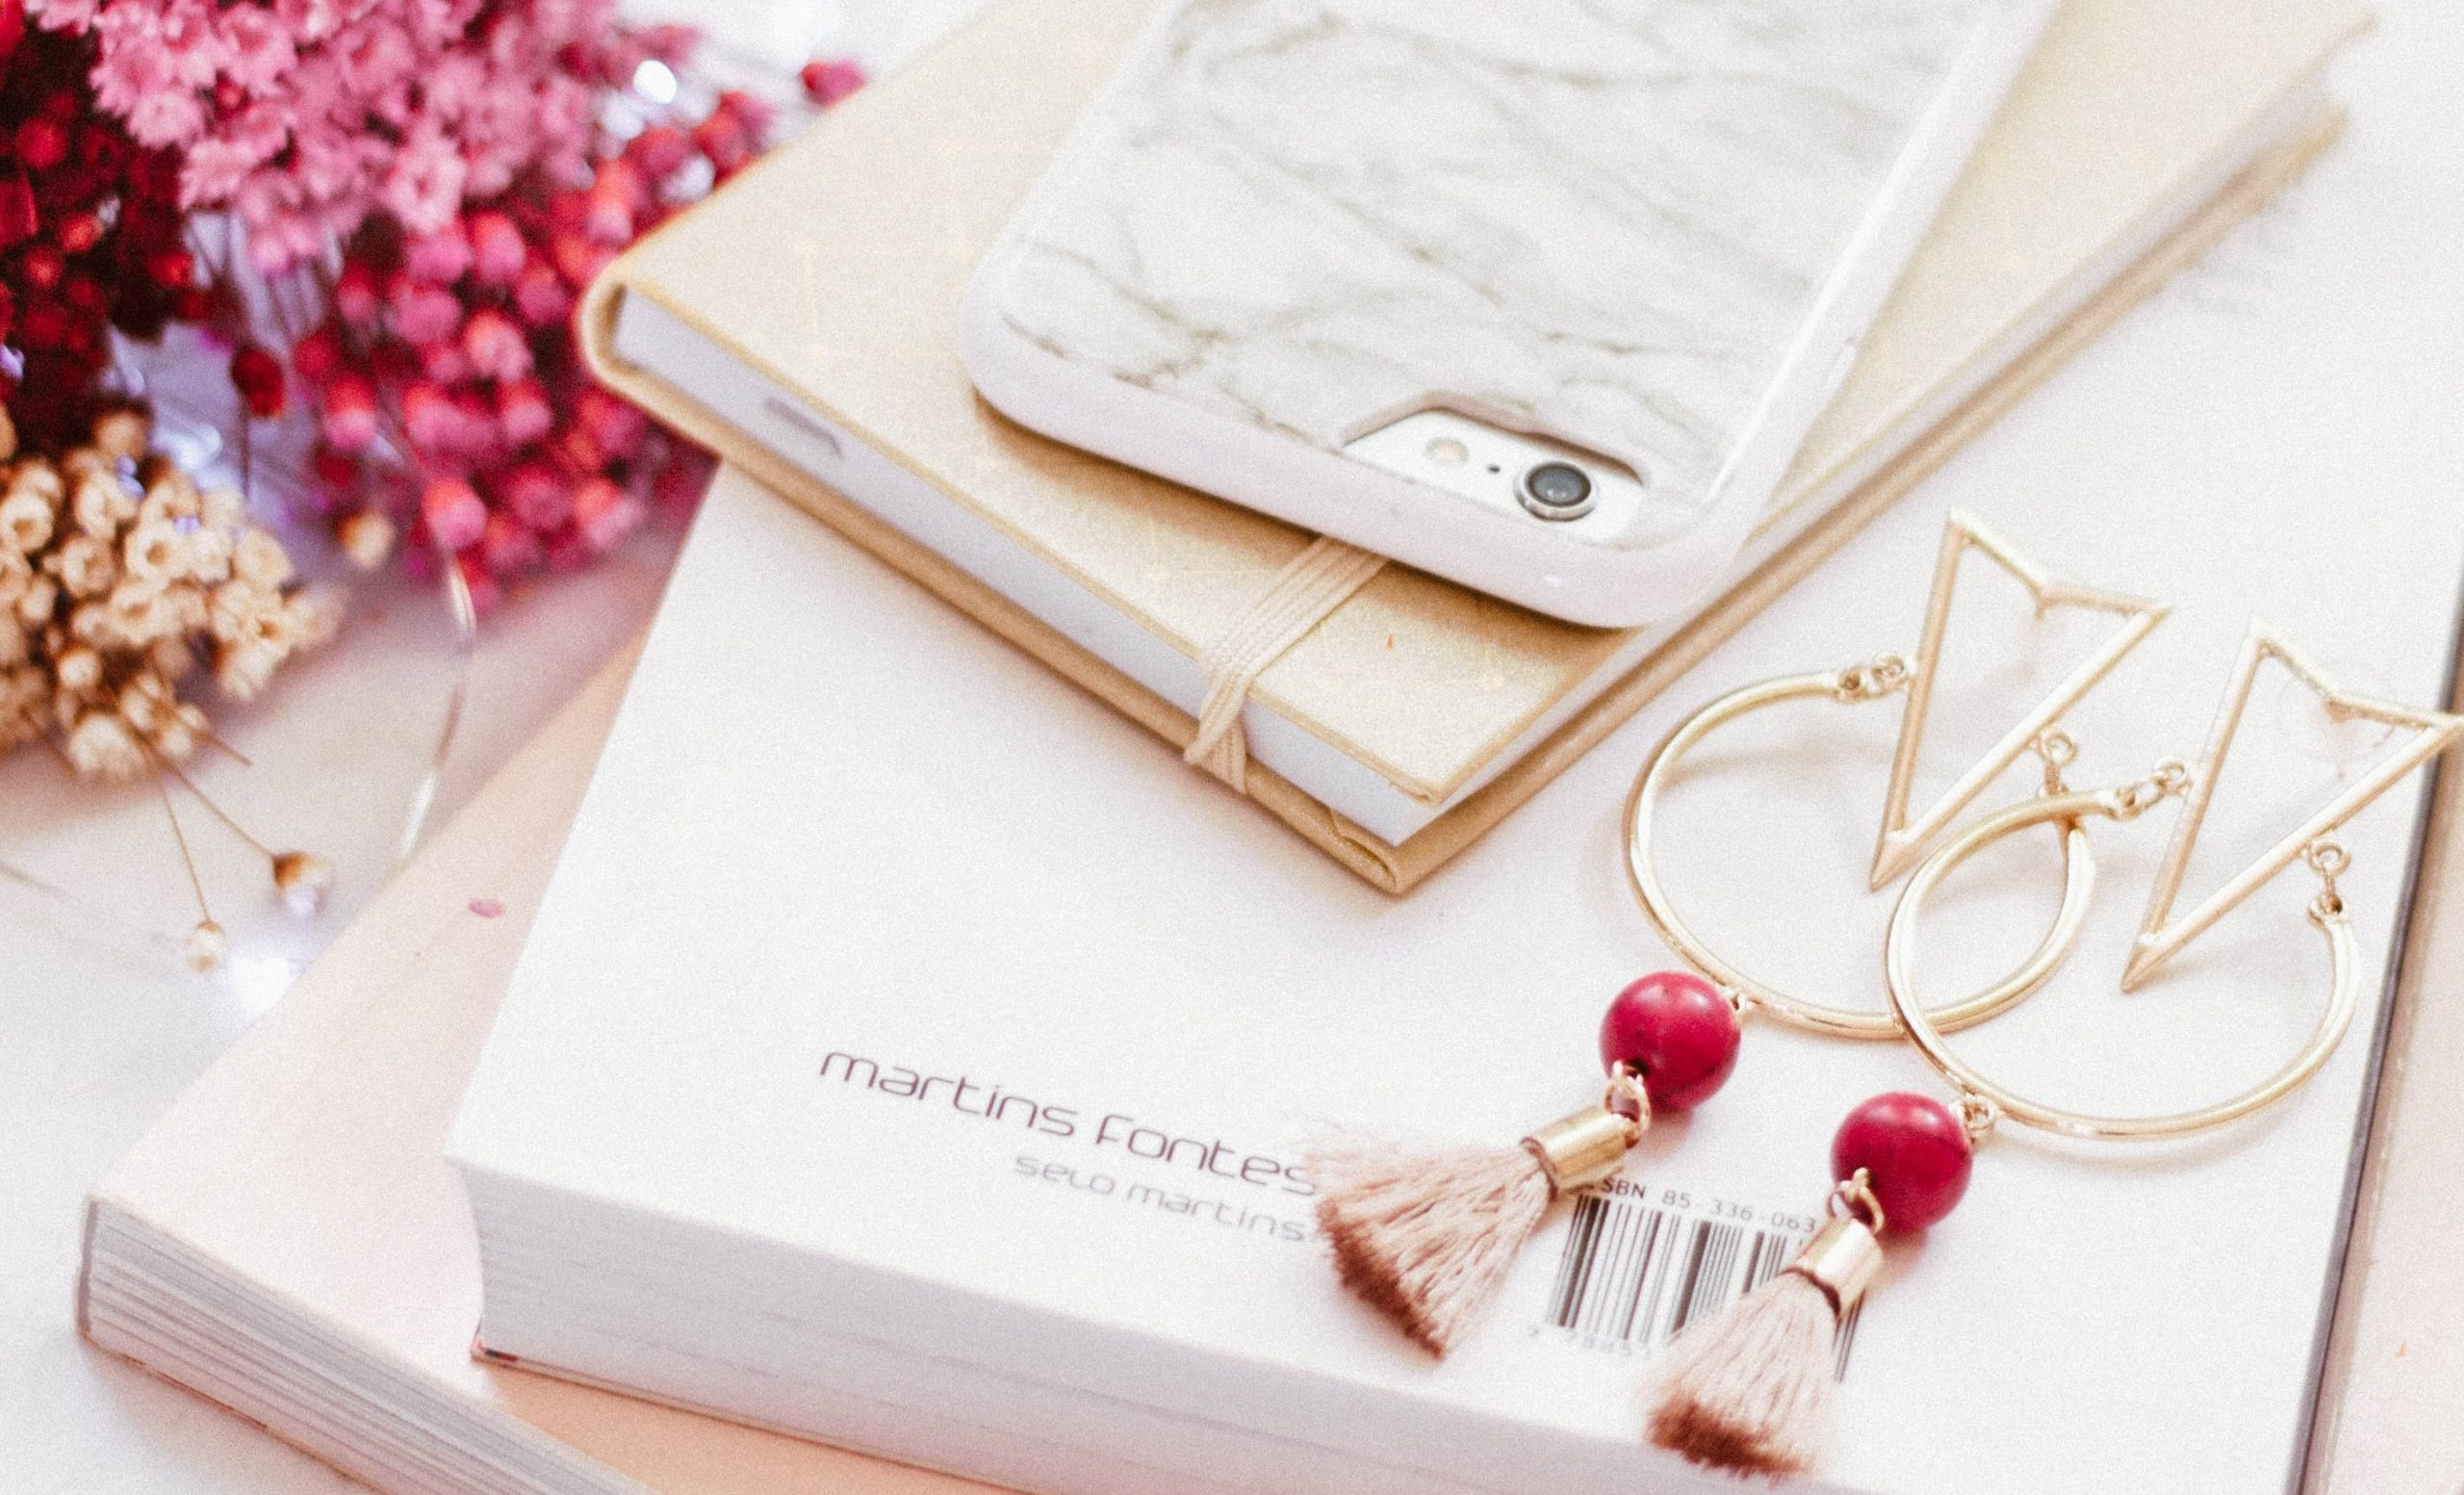 12 Social Media Tips for Marketing Your Jewellery Business